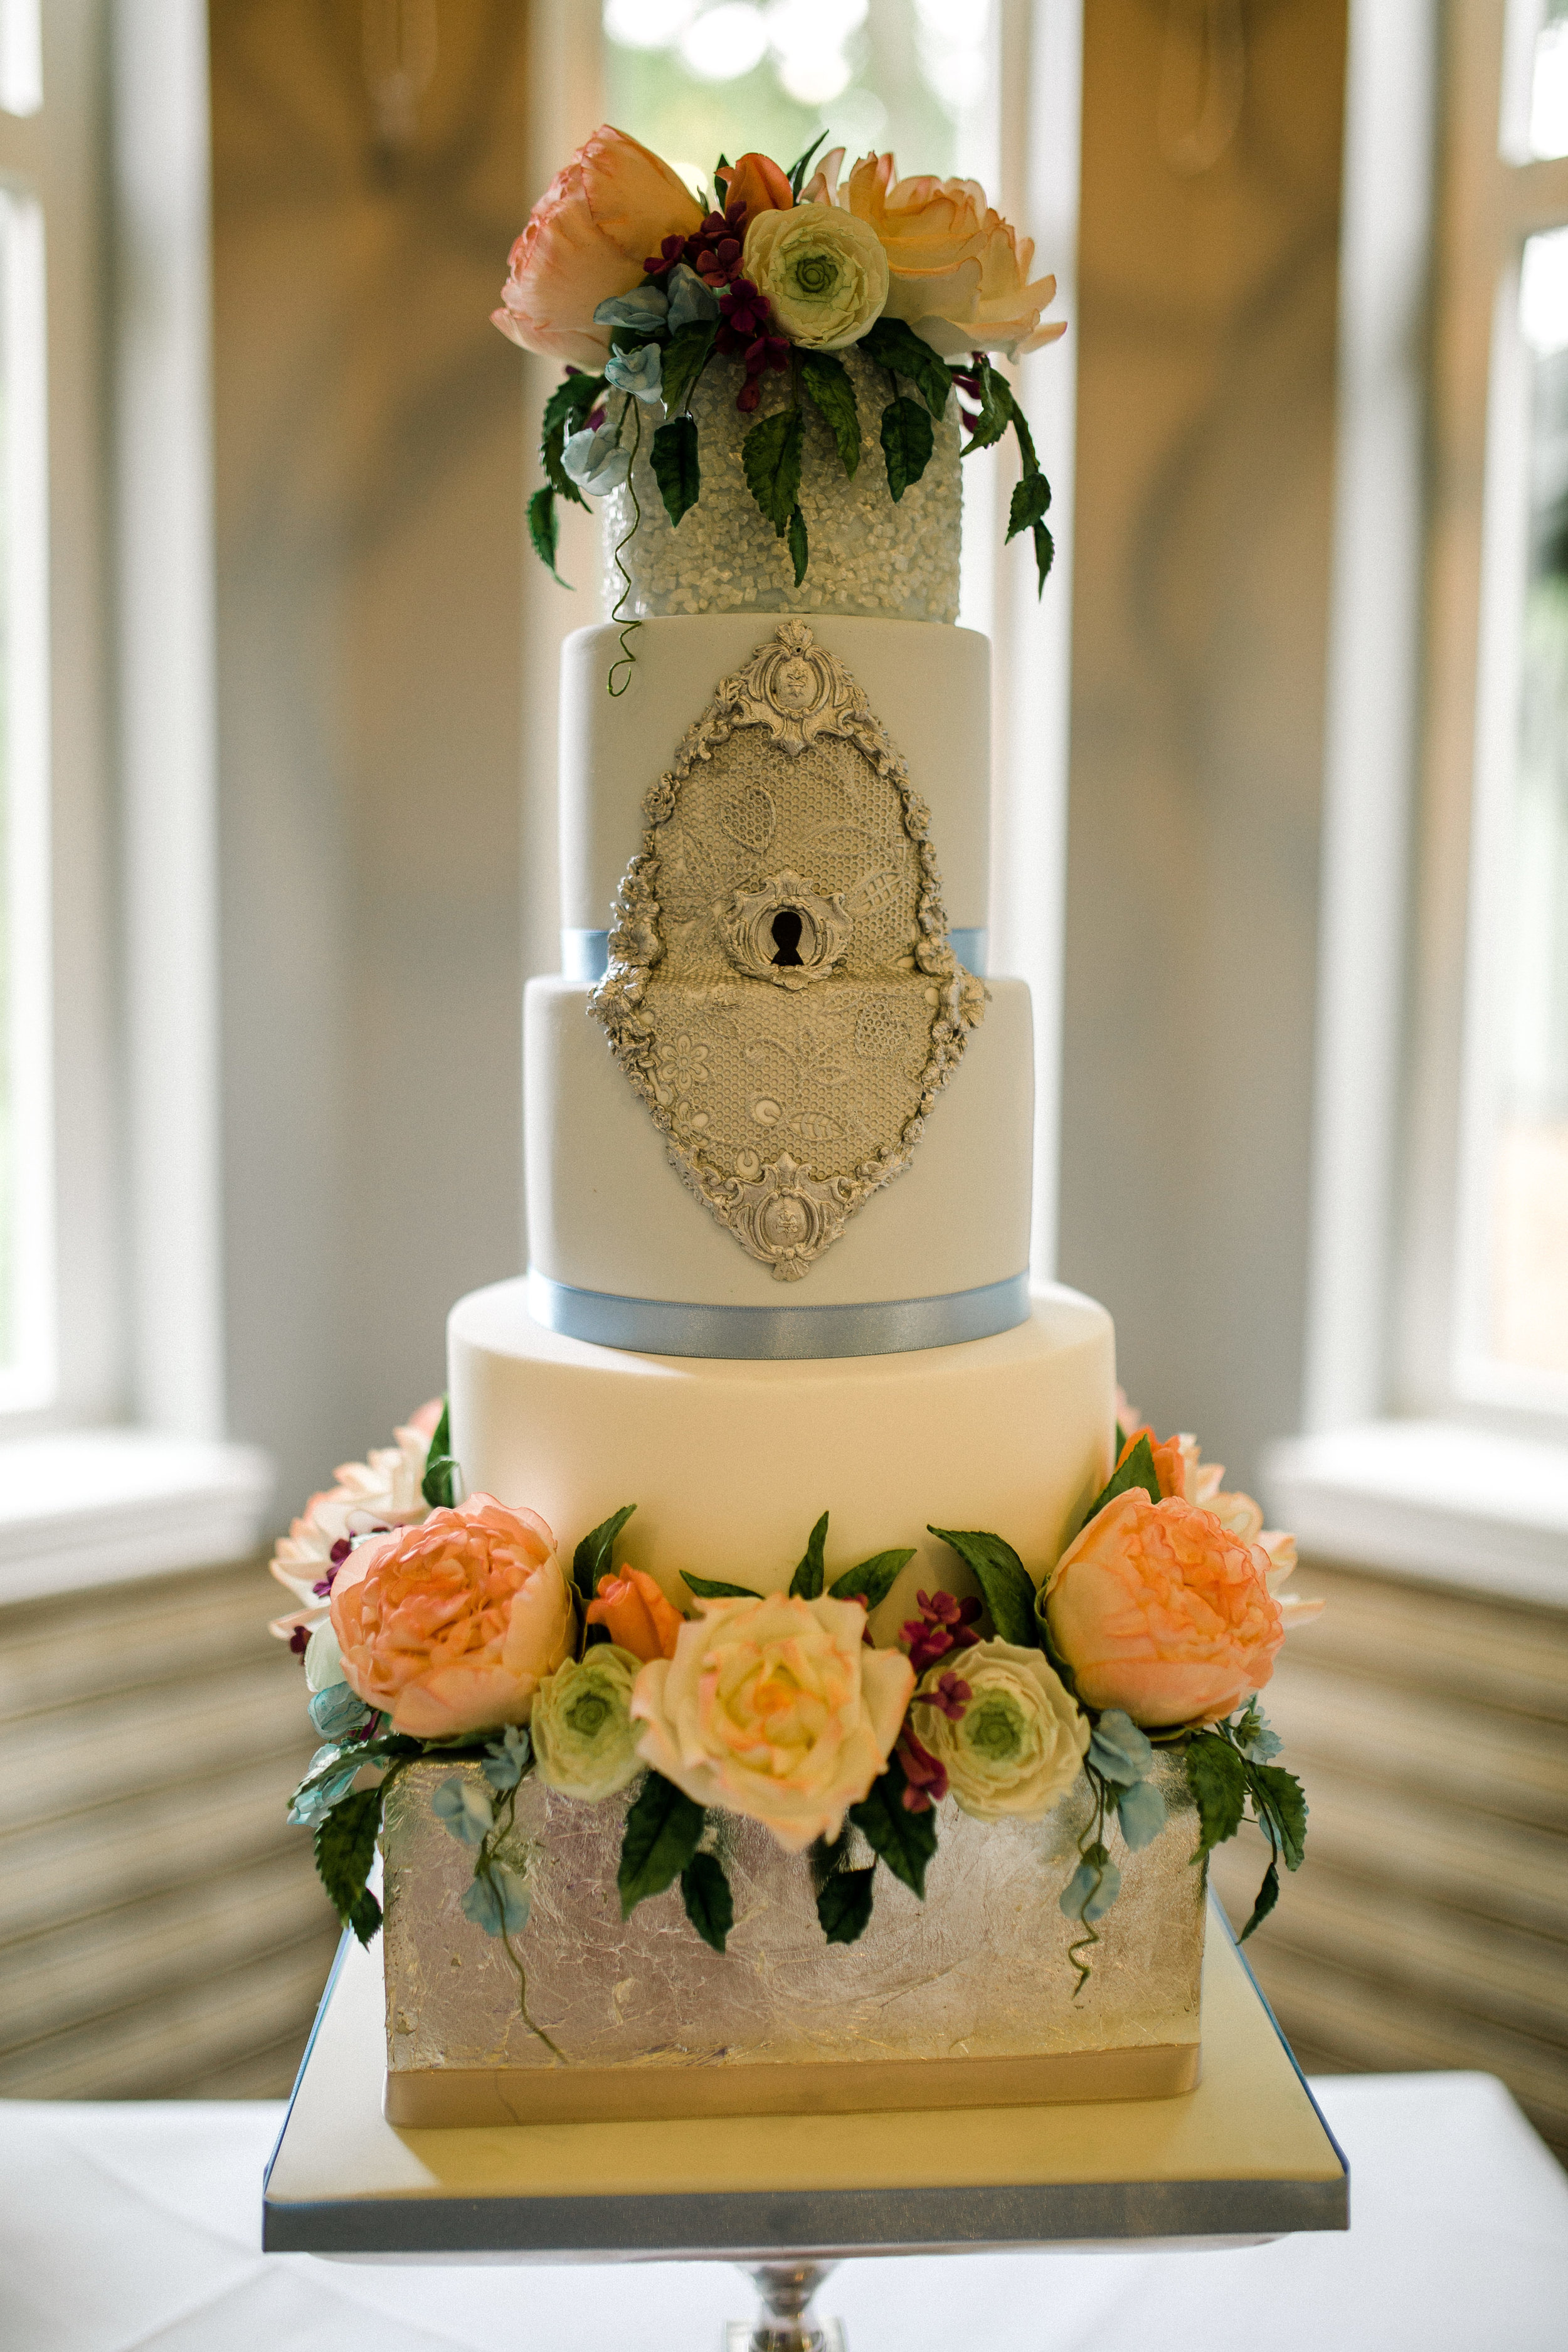 Mels Amazing Cakes Special Offer for Brook Mollington Banastre, Chester Wedding Fayre, Cheshire Wedding Fair Merseyside Red Event Wedding Shows5.jpg